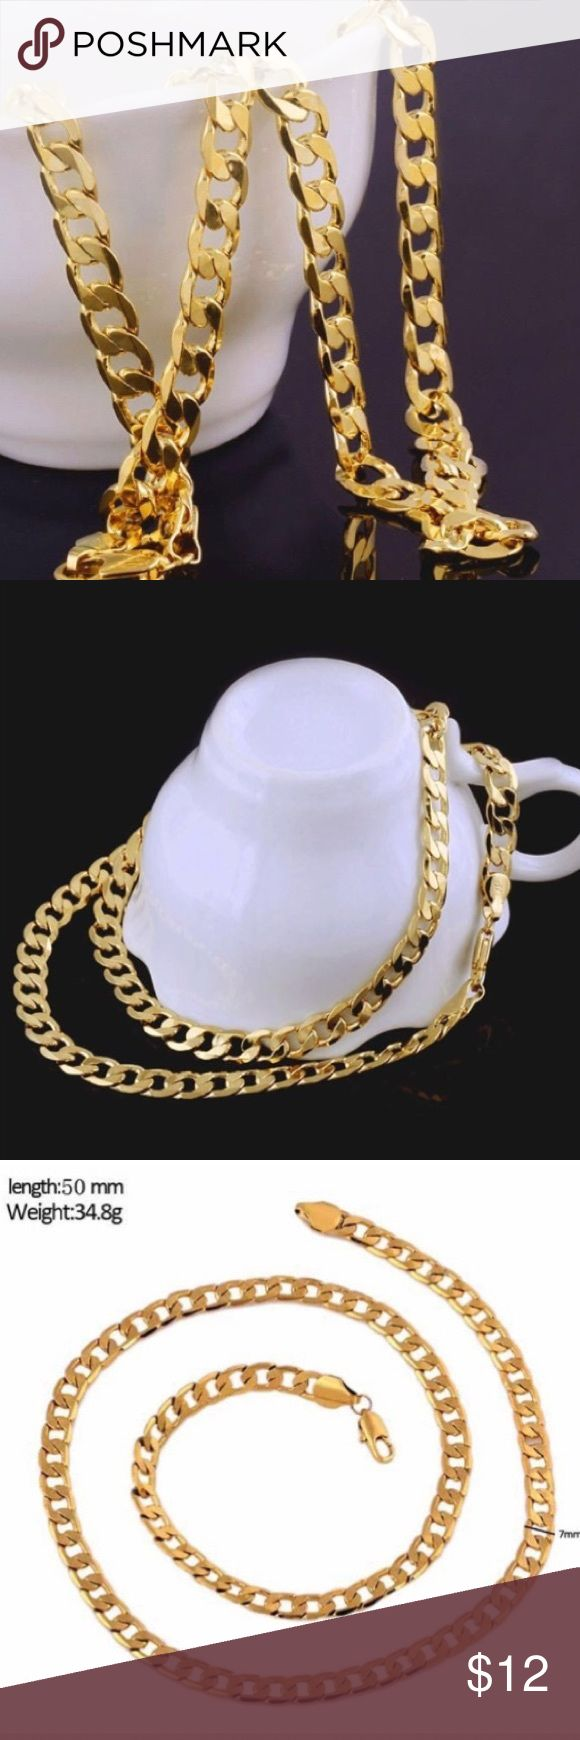 New 18k Gold Filled Chain For Men Or Women Brand New Chain For 20